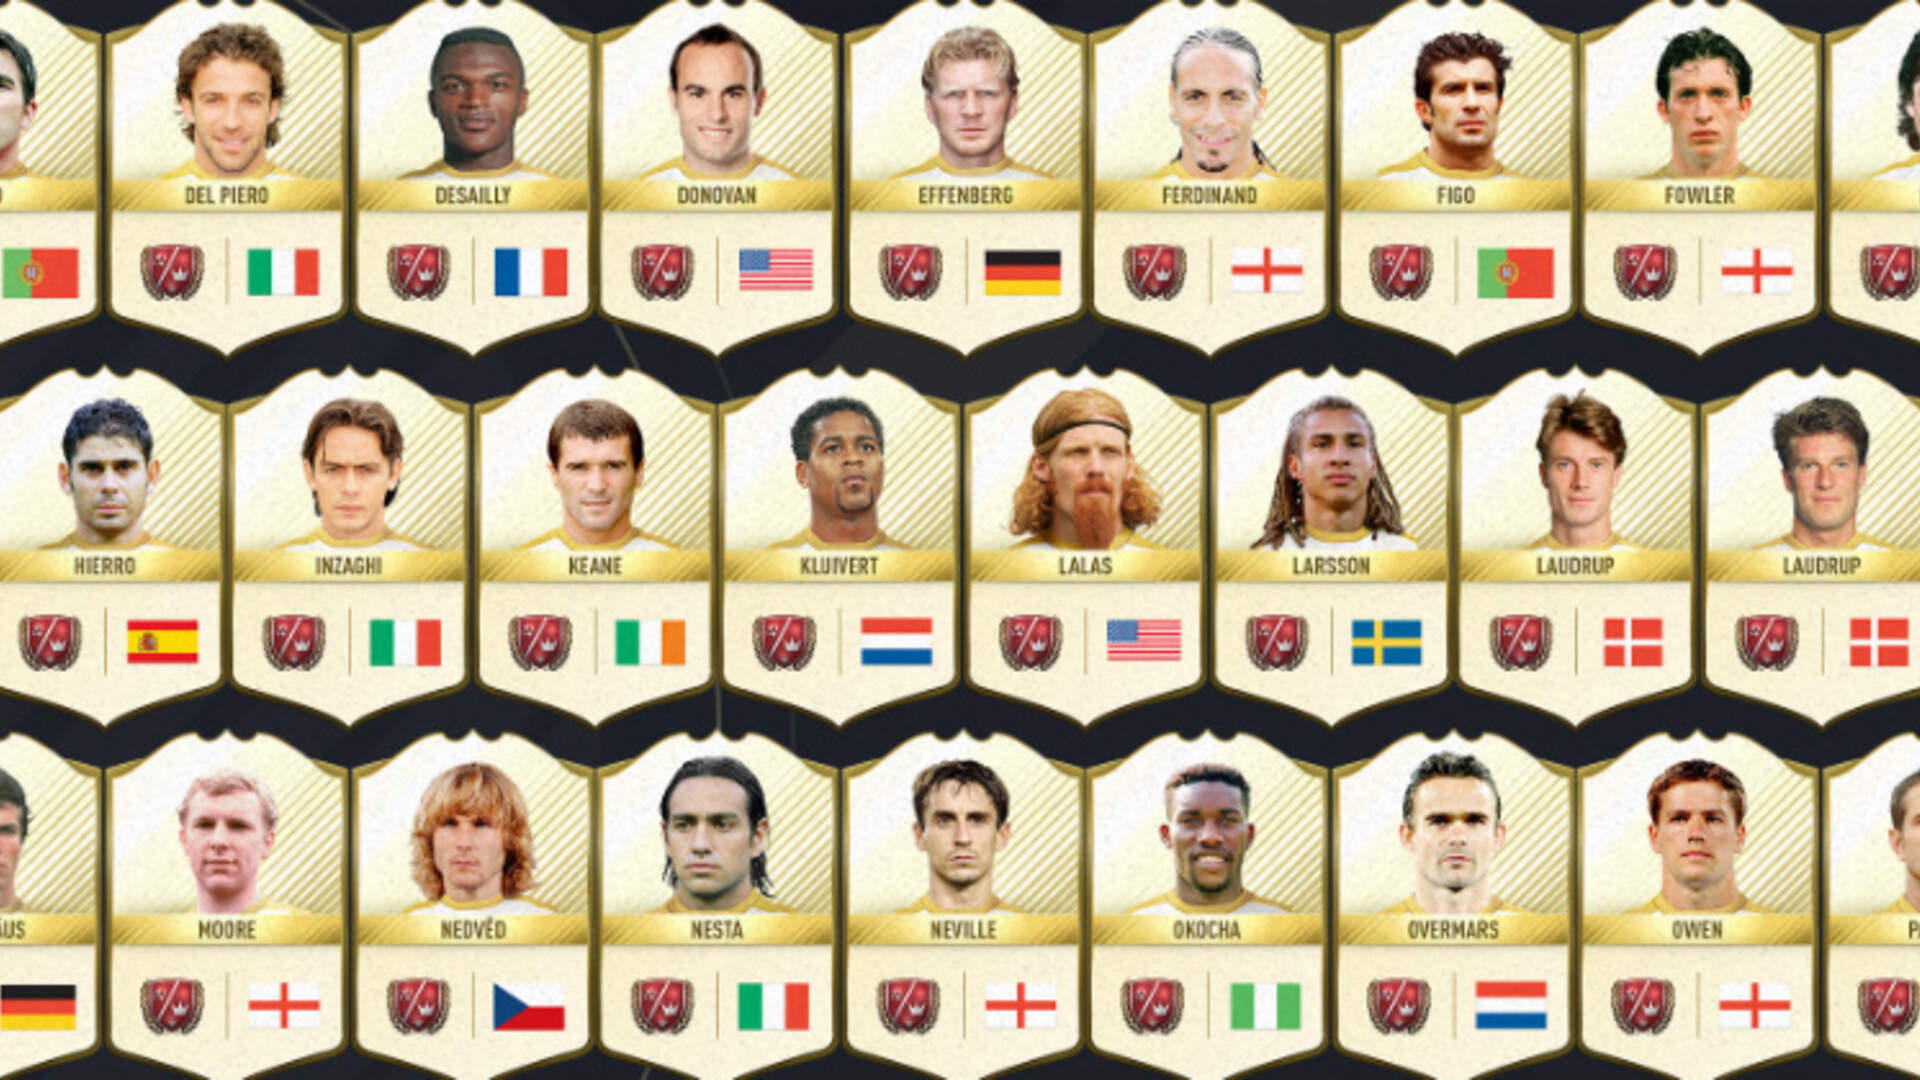 EA Says That FIFA Ultimate Team is Not Gambling, Working to Stop Illegal Resellers